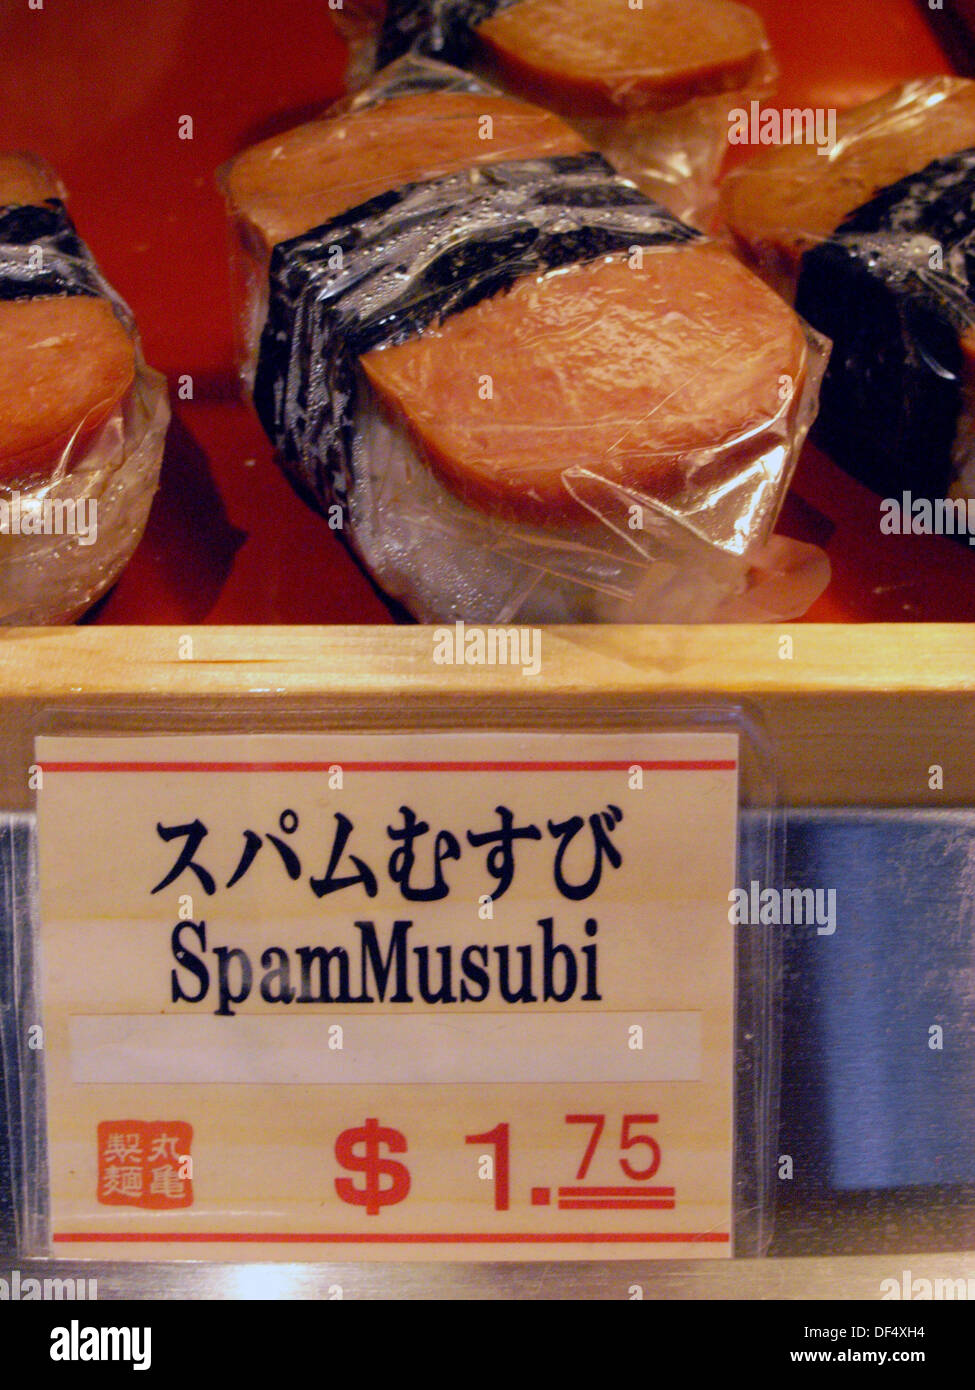 Spam musubi - fusion of pacific and polynesian cuisines - fast food for sale in Waikiki, Hawaii Stock Photo